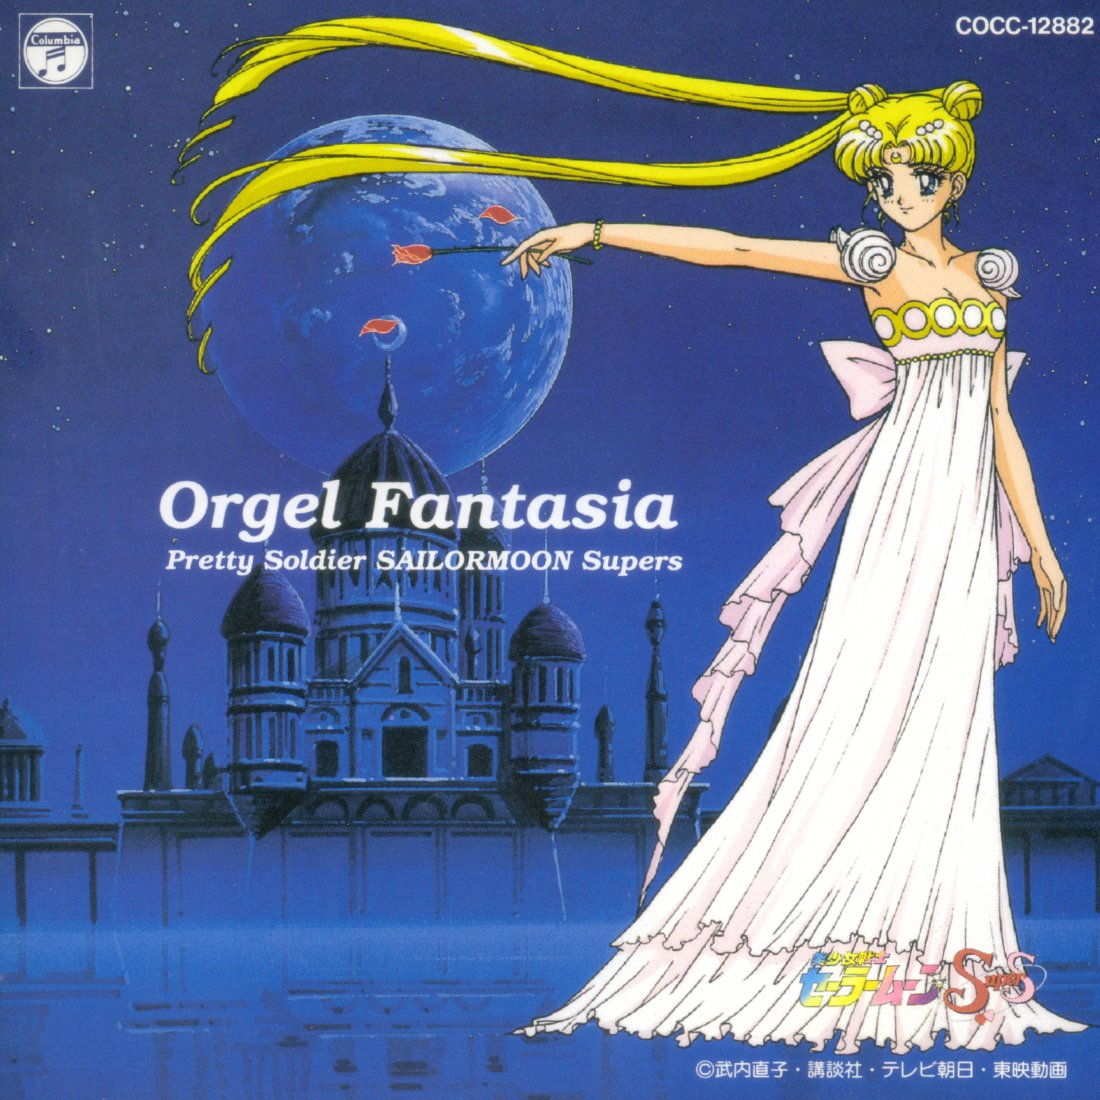 Pretty Soldier Sailor Moon SuperS Orgel Fantasia